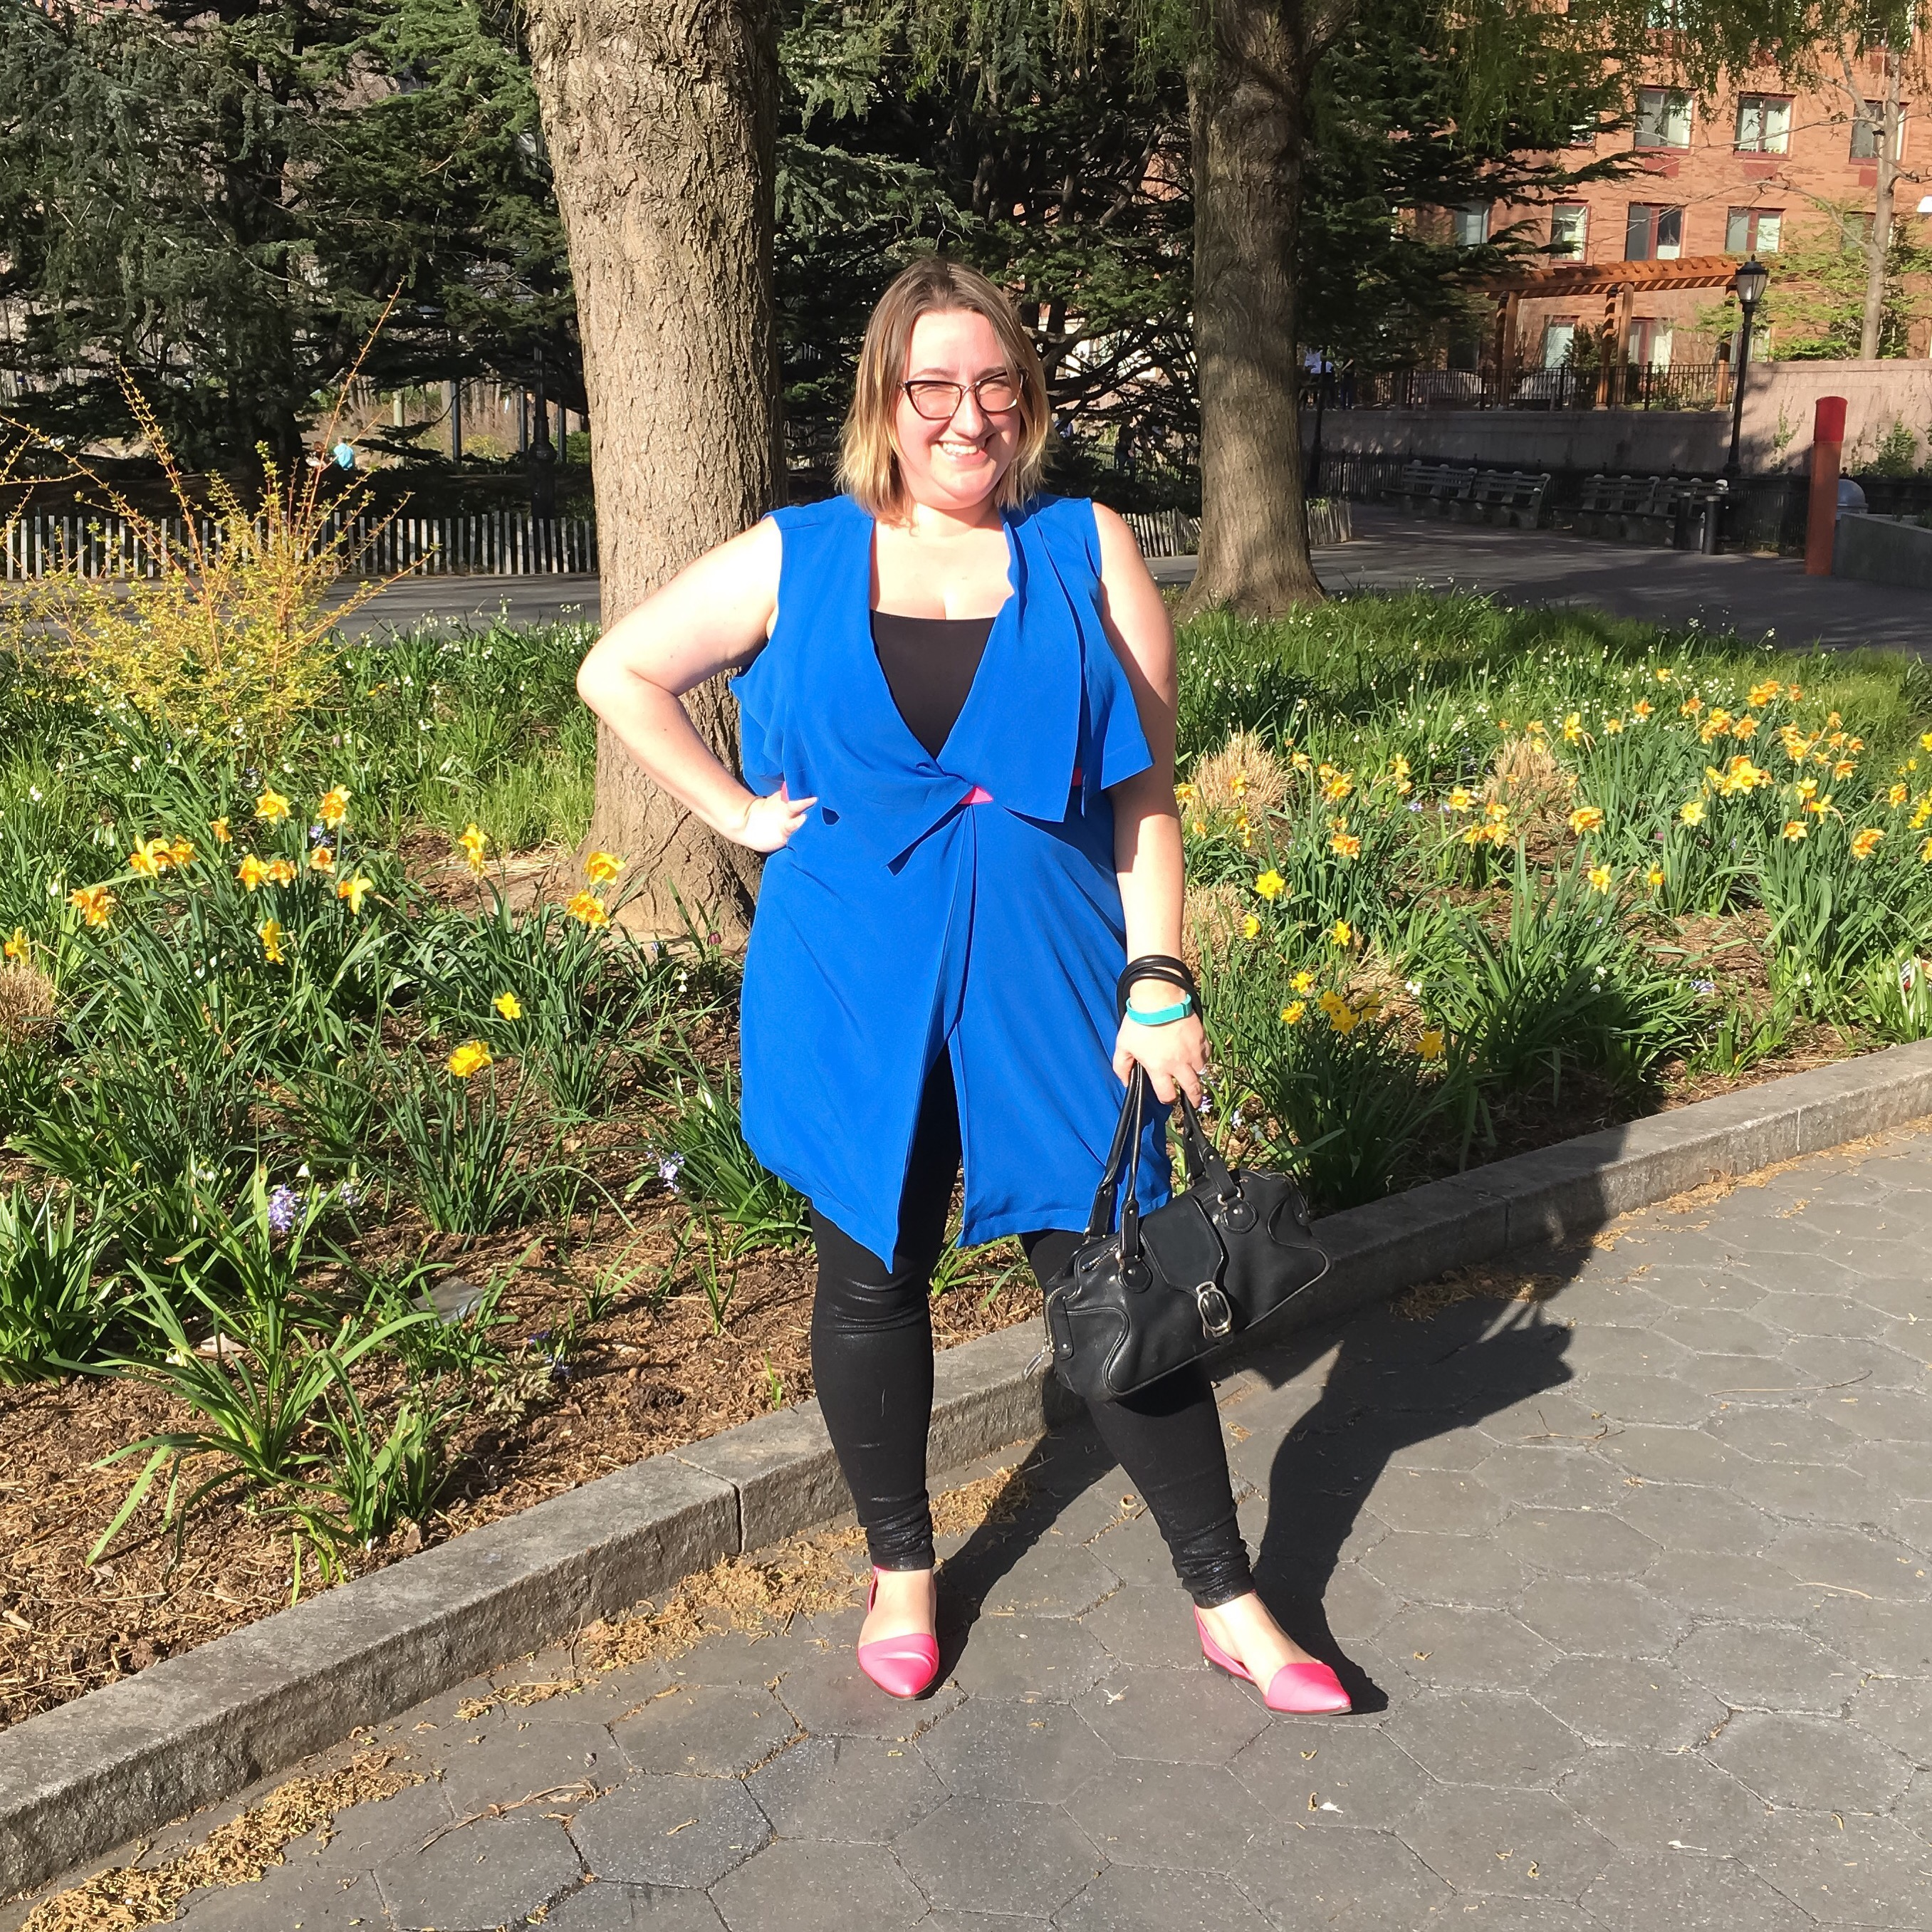 OOTD: Bright Colors and Sunlight